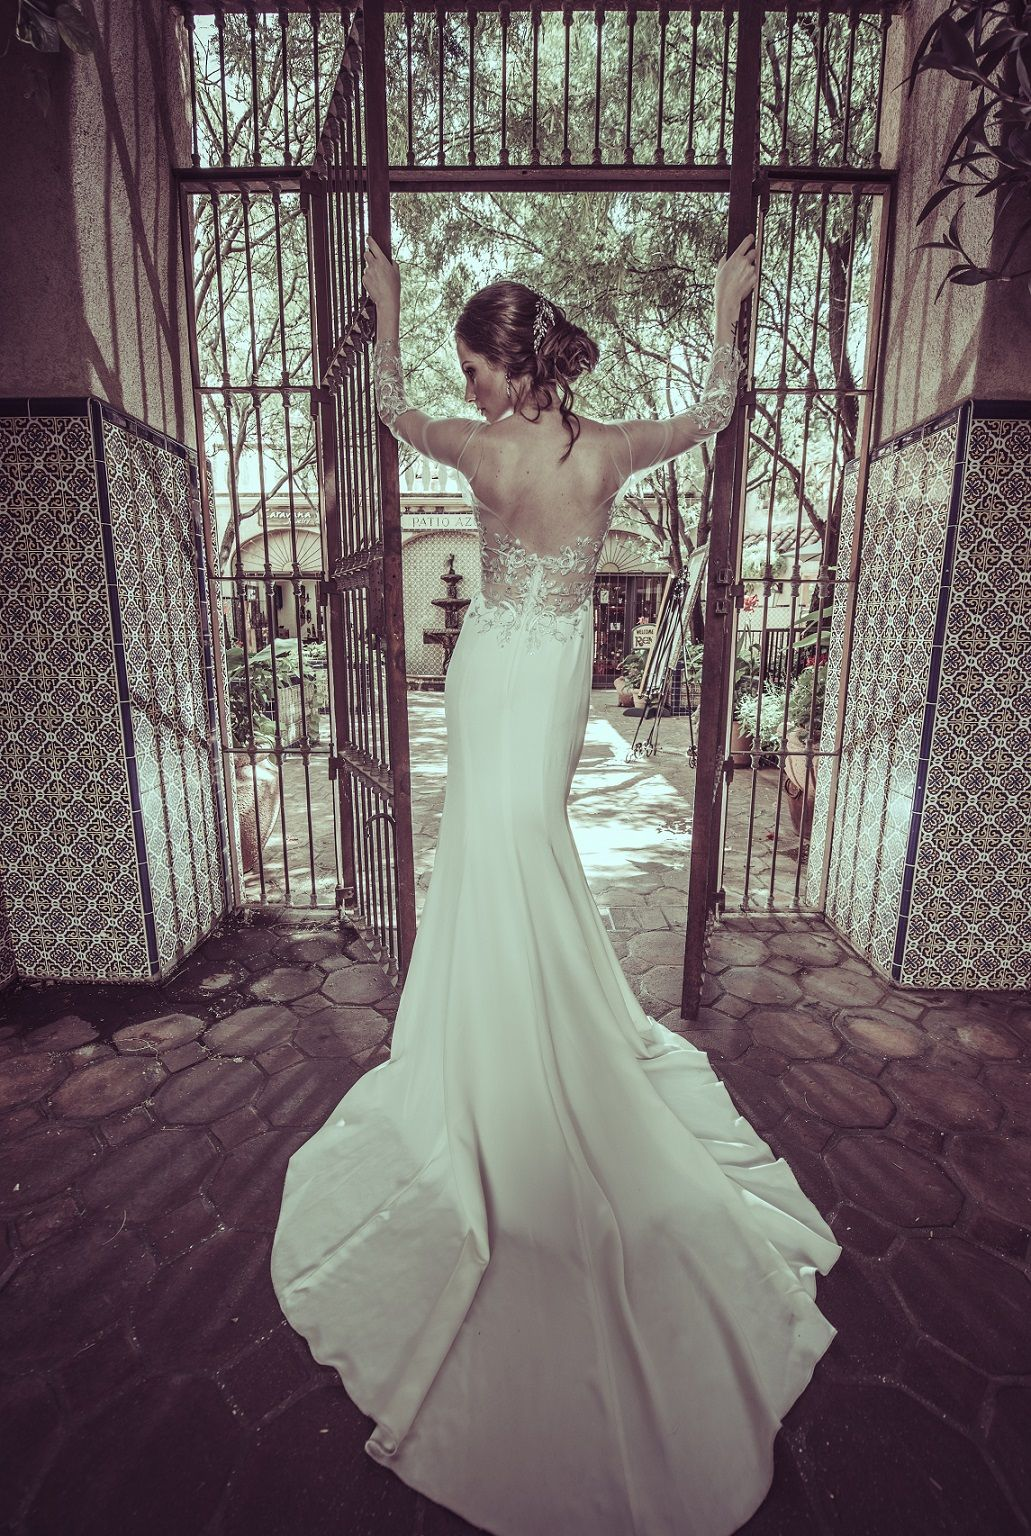 Styled Shoot Liancarlo Wedding Gown Style 6824 Makeup Makeupbutterfly Photo By Neal Mei Photogra Bridal Style Wedding Gown Styles Mermaid Wedding Dress